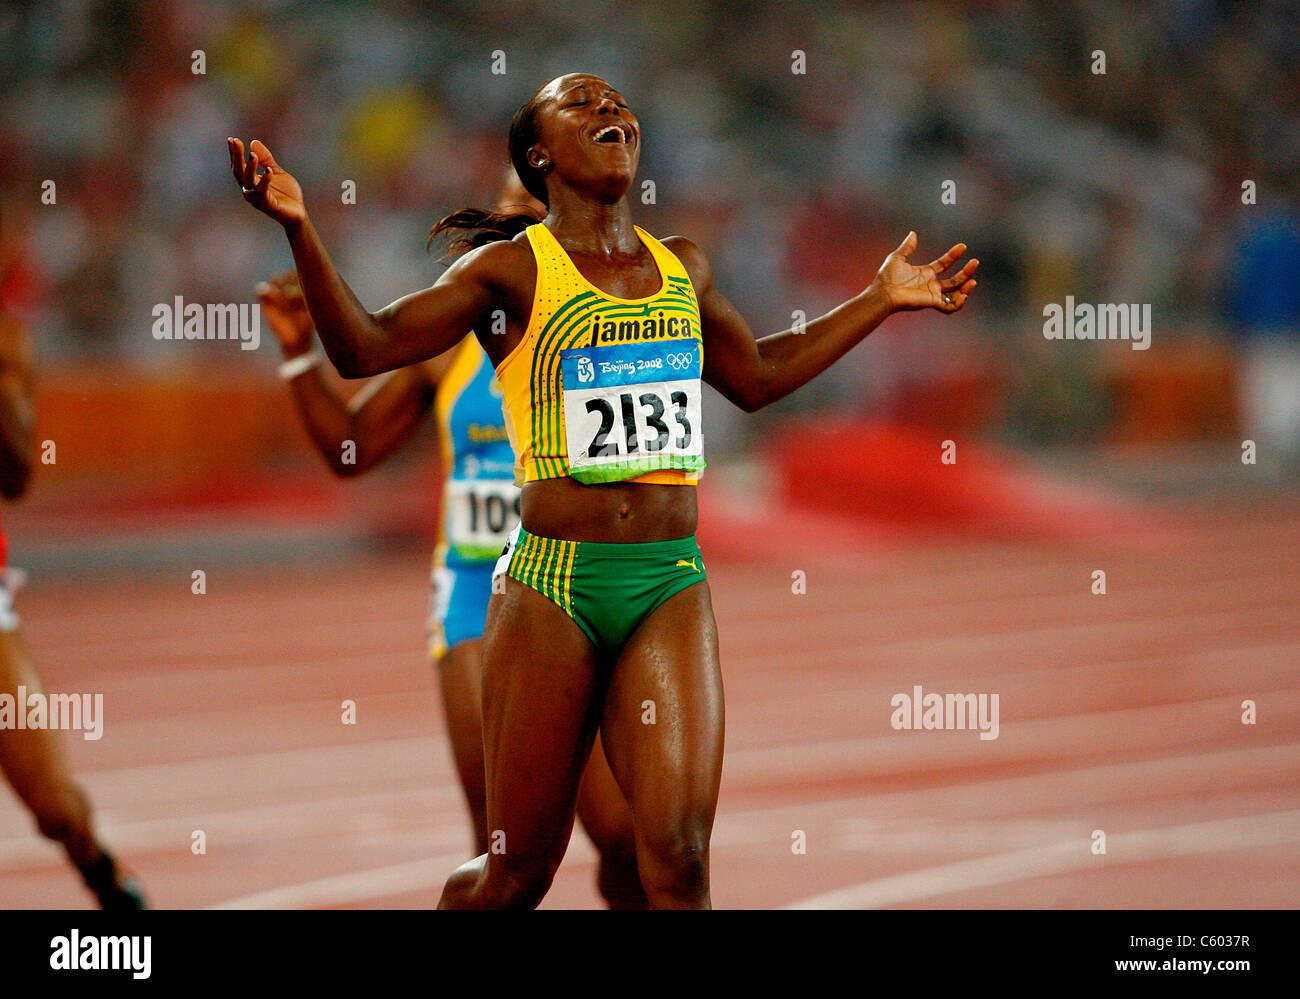 Veronica Campbell-Brown 7 Olympic medals Veronica Campbell-Brown 7 Olympic medals new picture